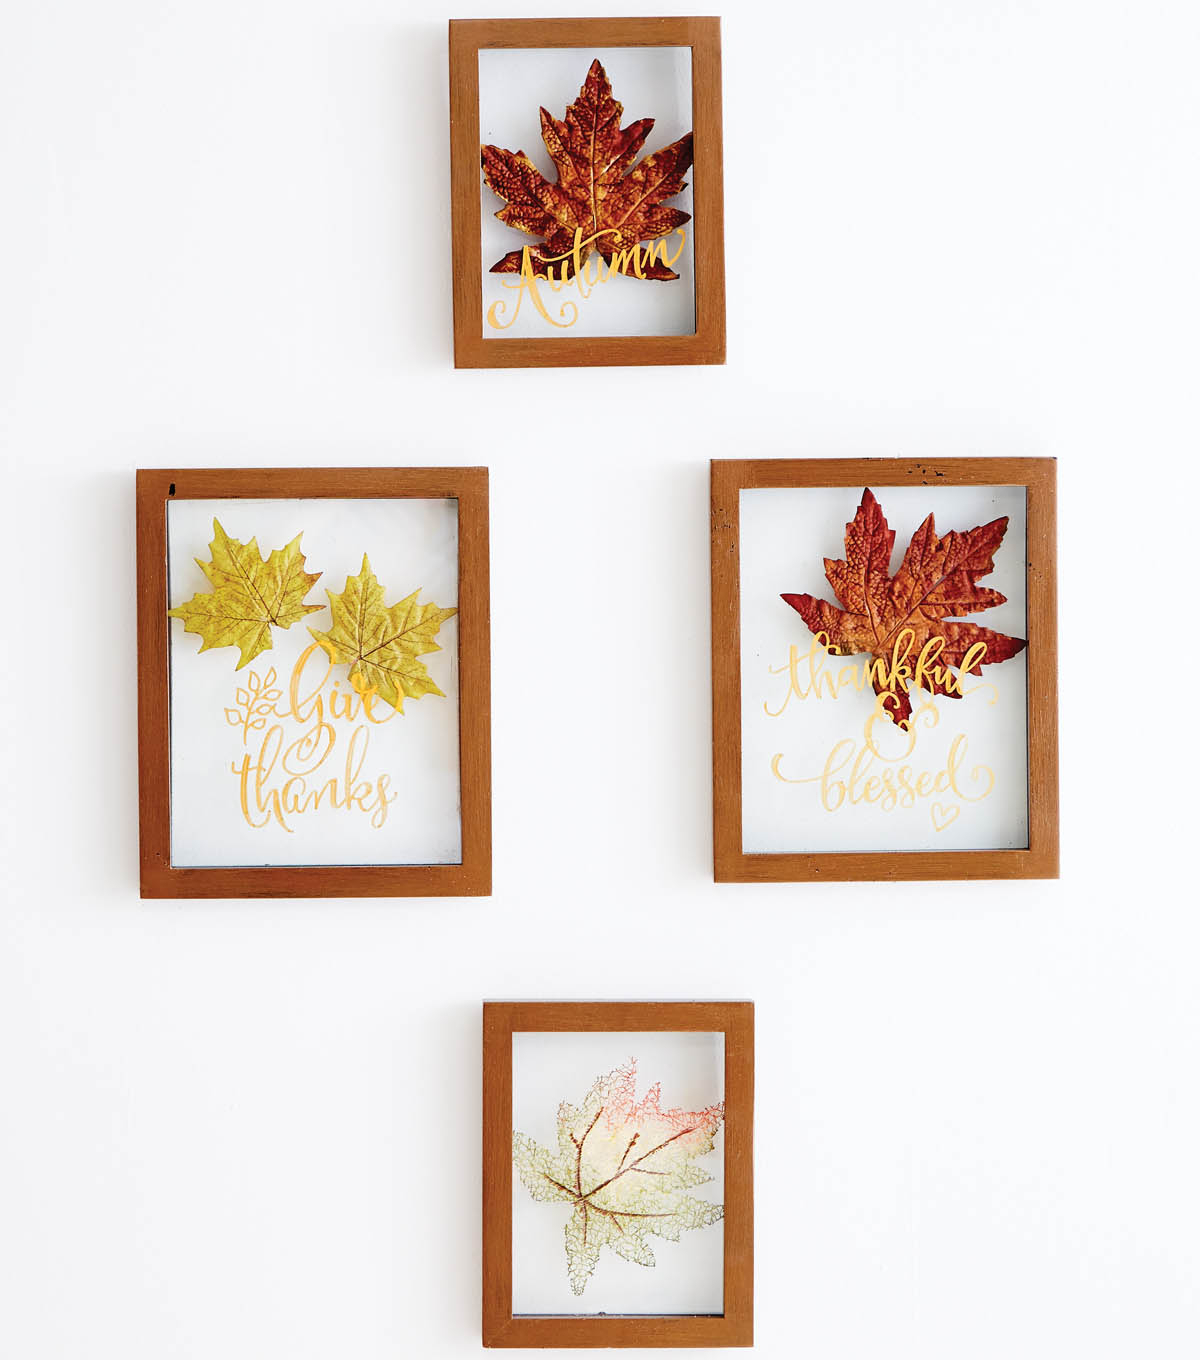 Fall Leaf Floating Frame Wall Decor Autumn Falling Leaves intended for Flowing Leaves Wall Decor (Image 7 of 30)